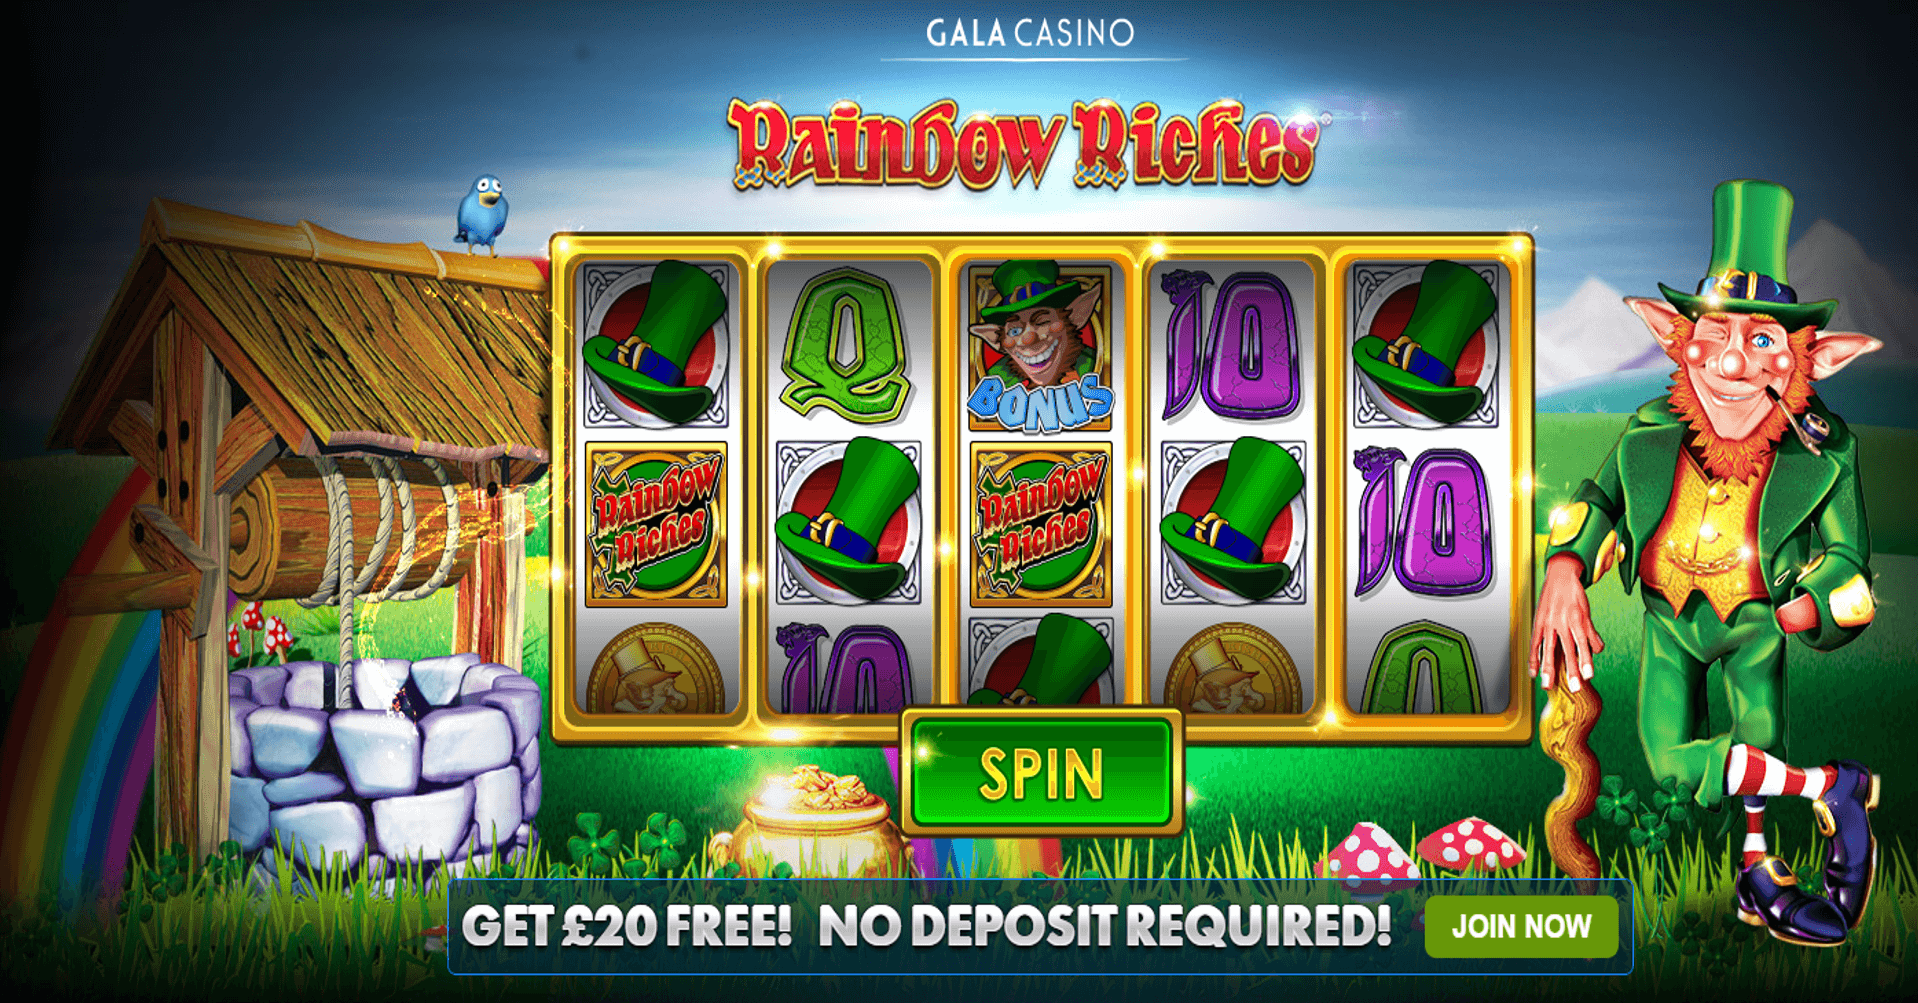 Rainbow Riches £20 Free